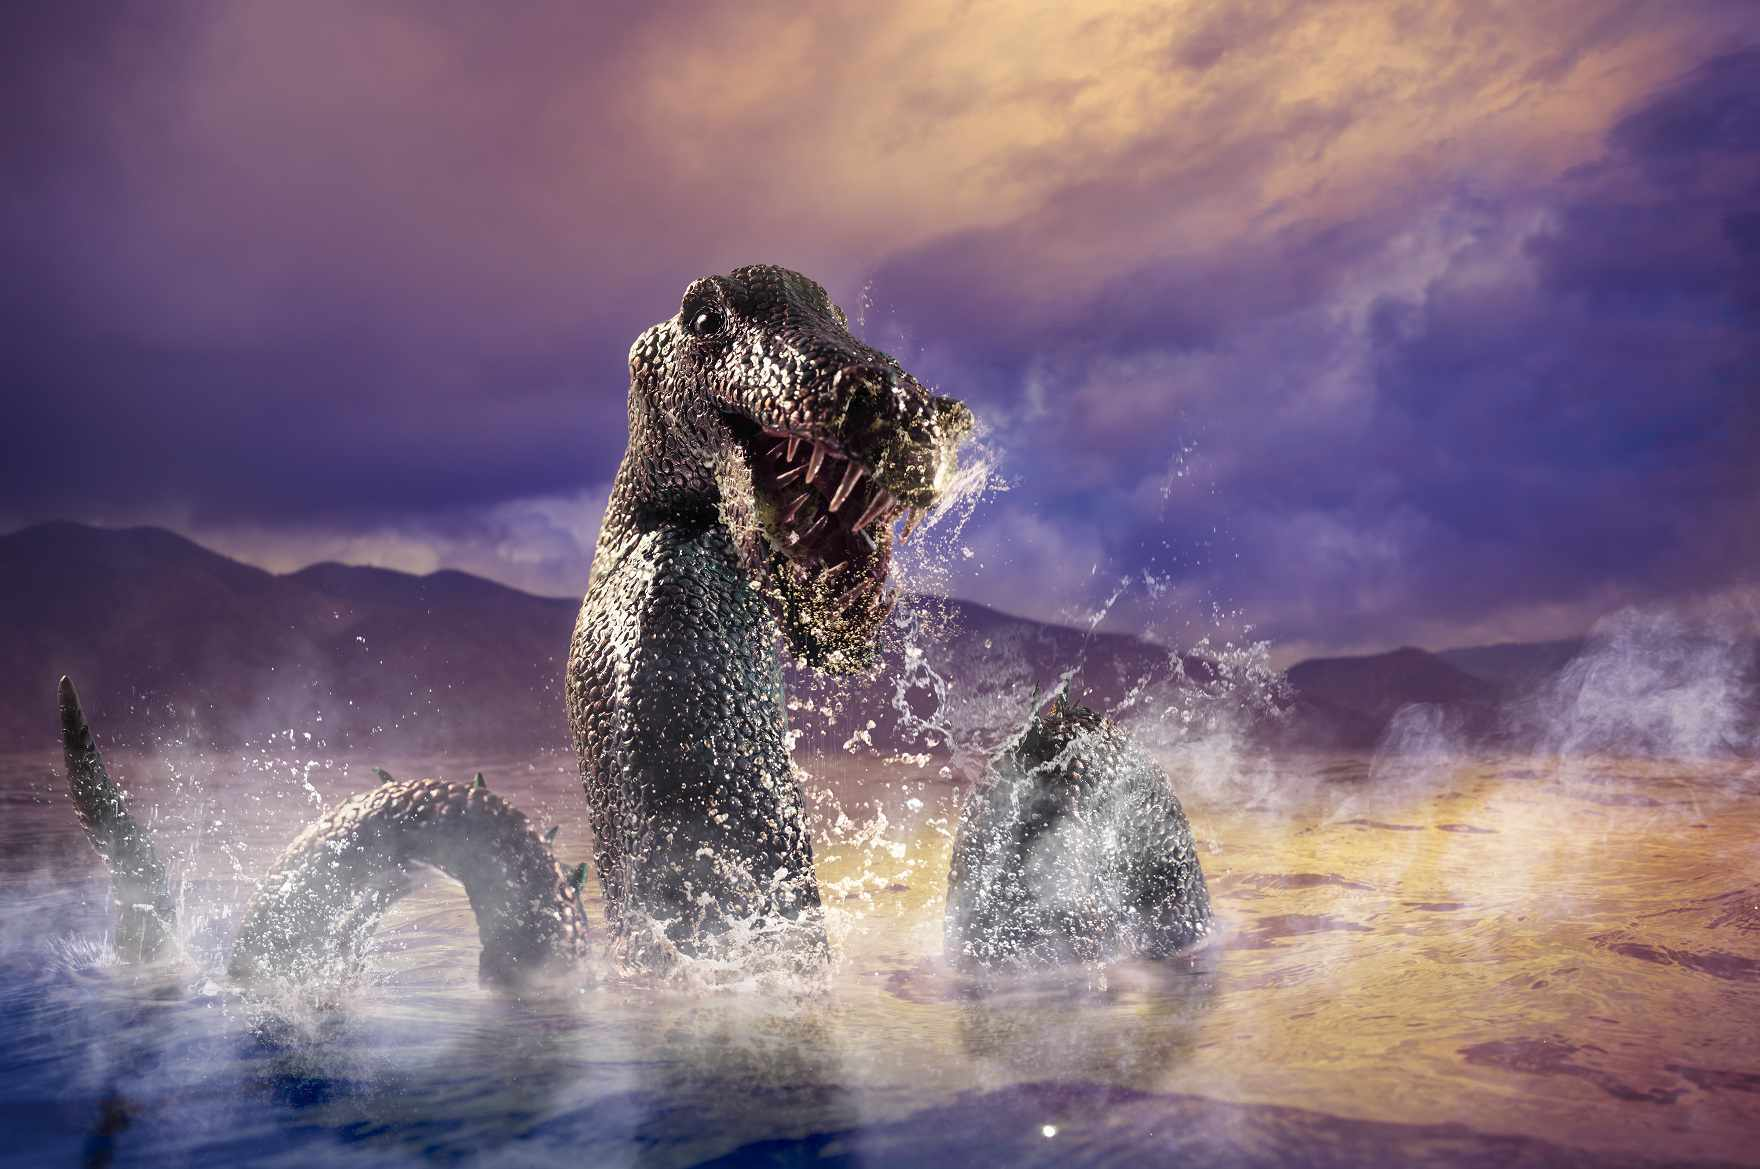 Facts Not Myths About The Loch Ness Monster